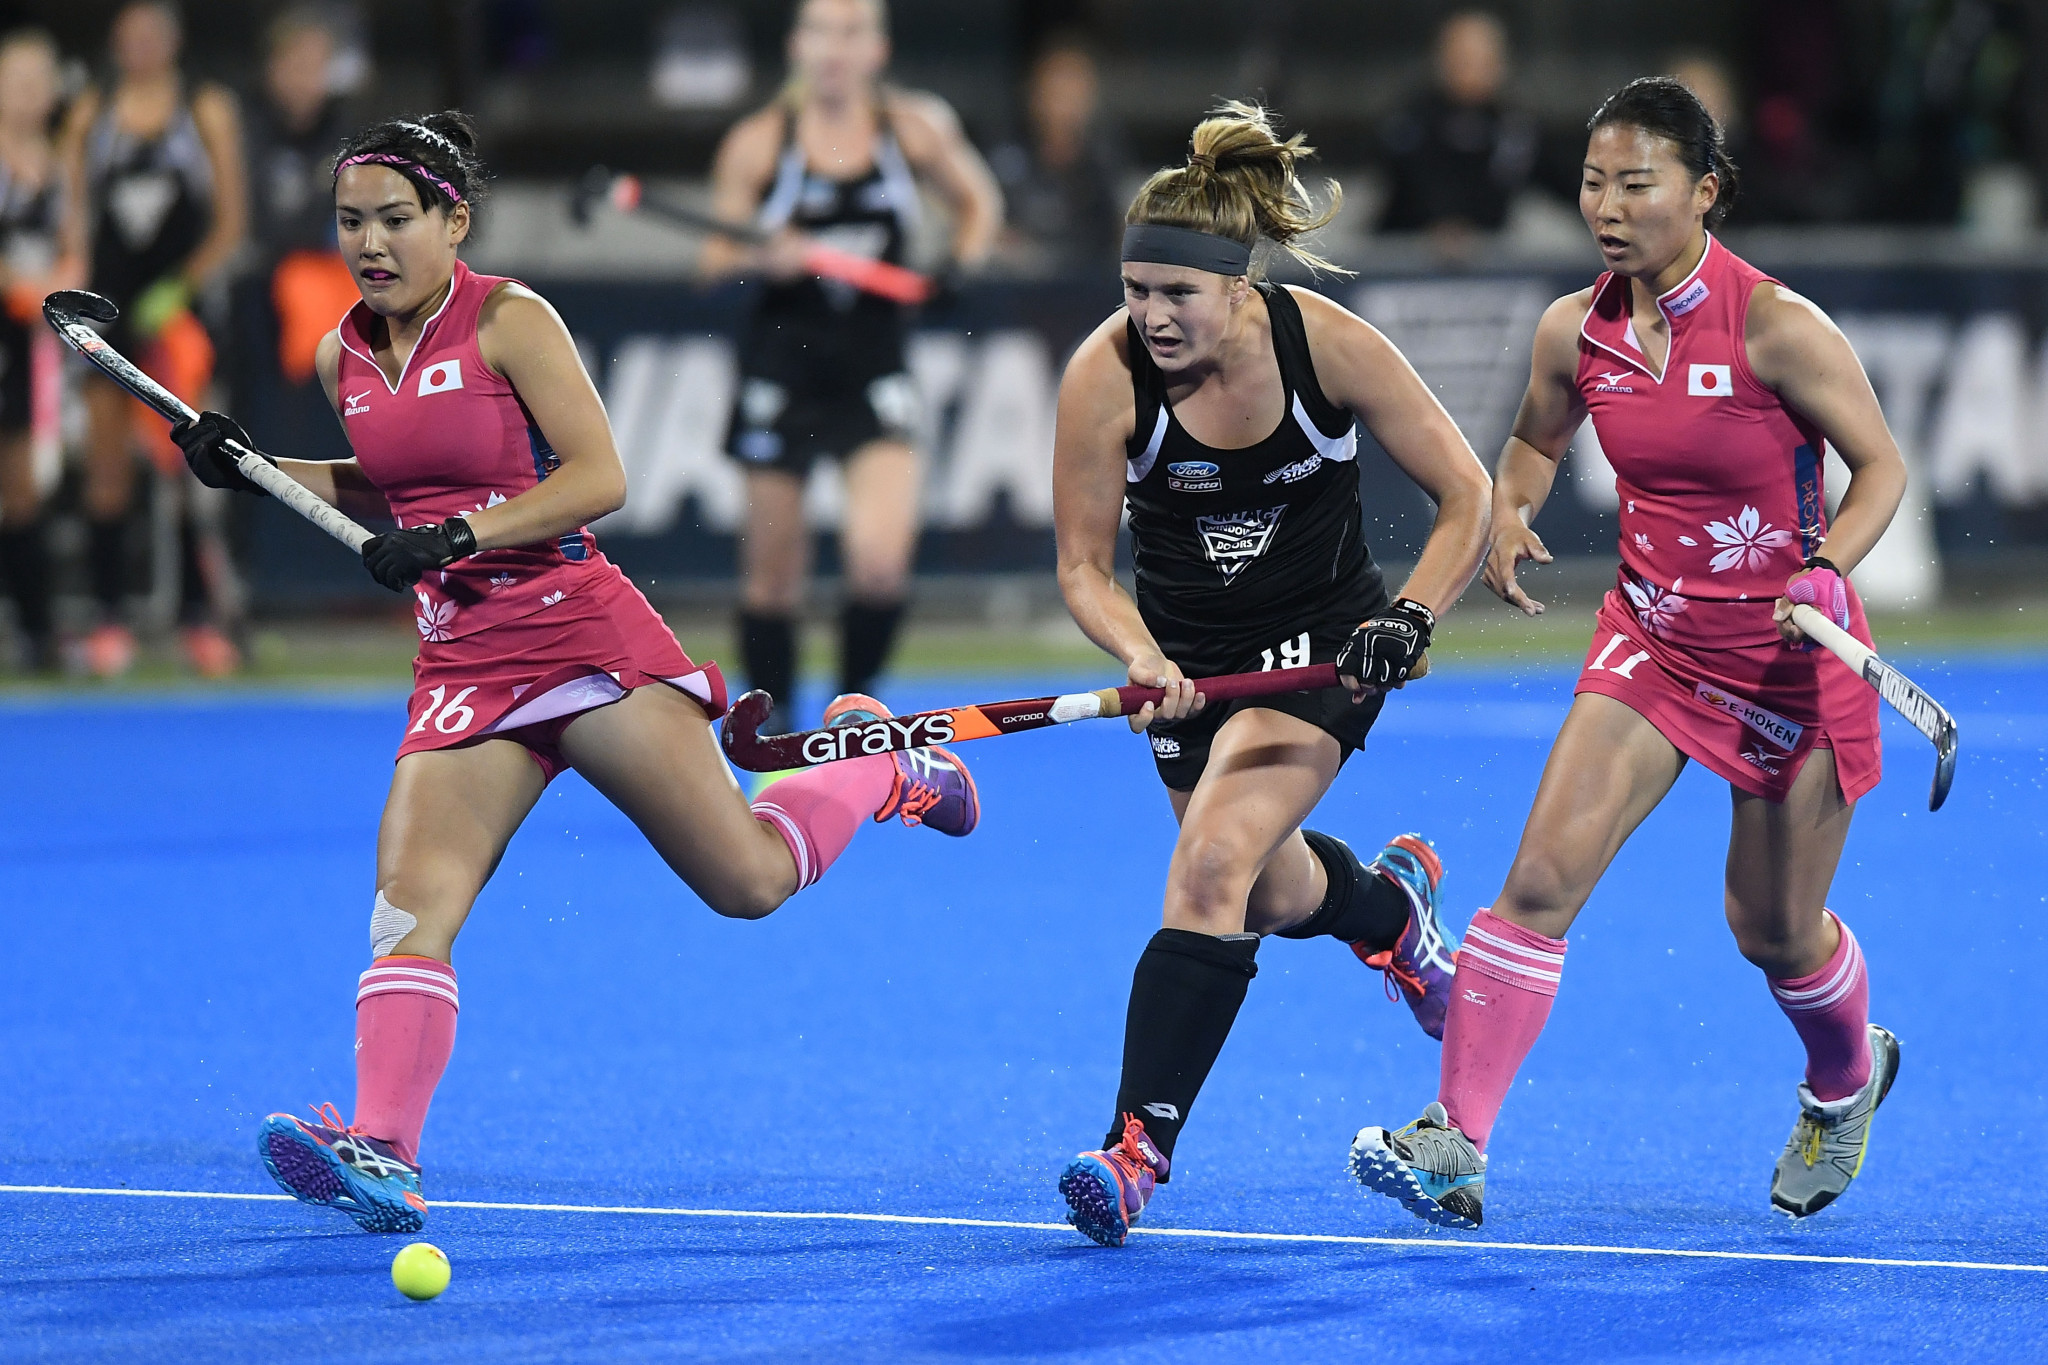 The exact reasons behind Tessa Jopp's withdrawal from New Zealand's hockey team have not been revealed ©Getty Images